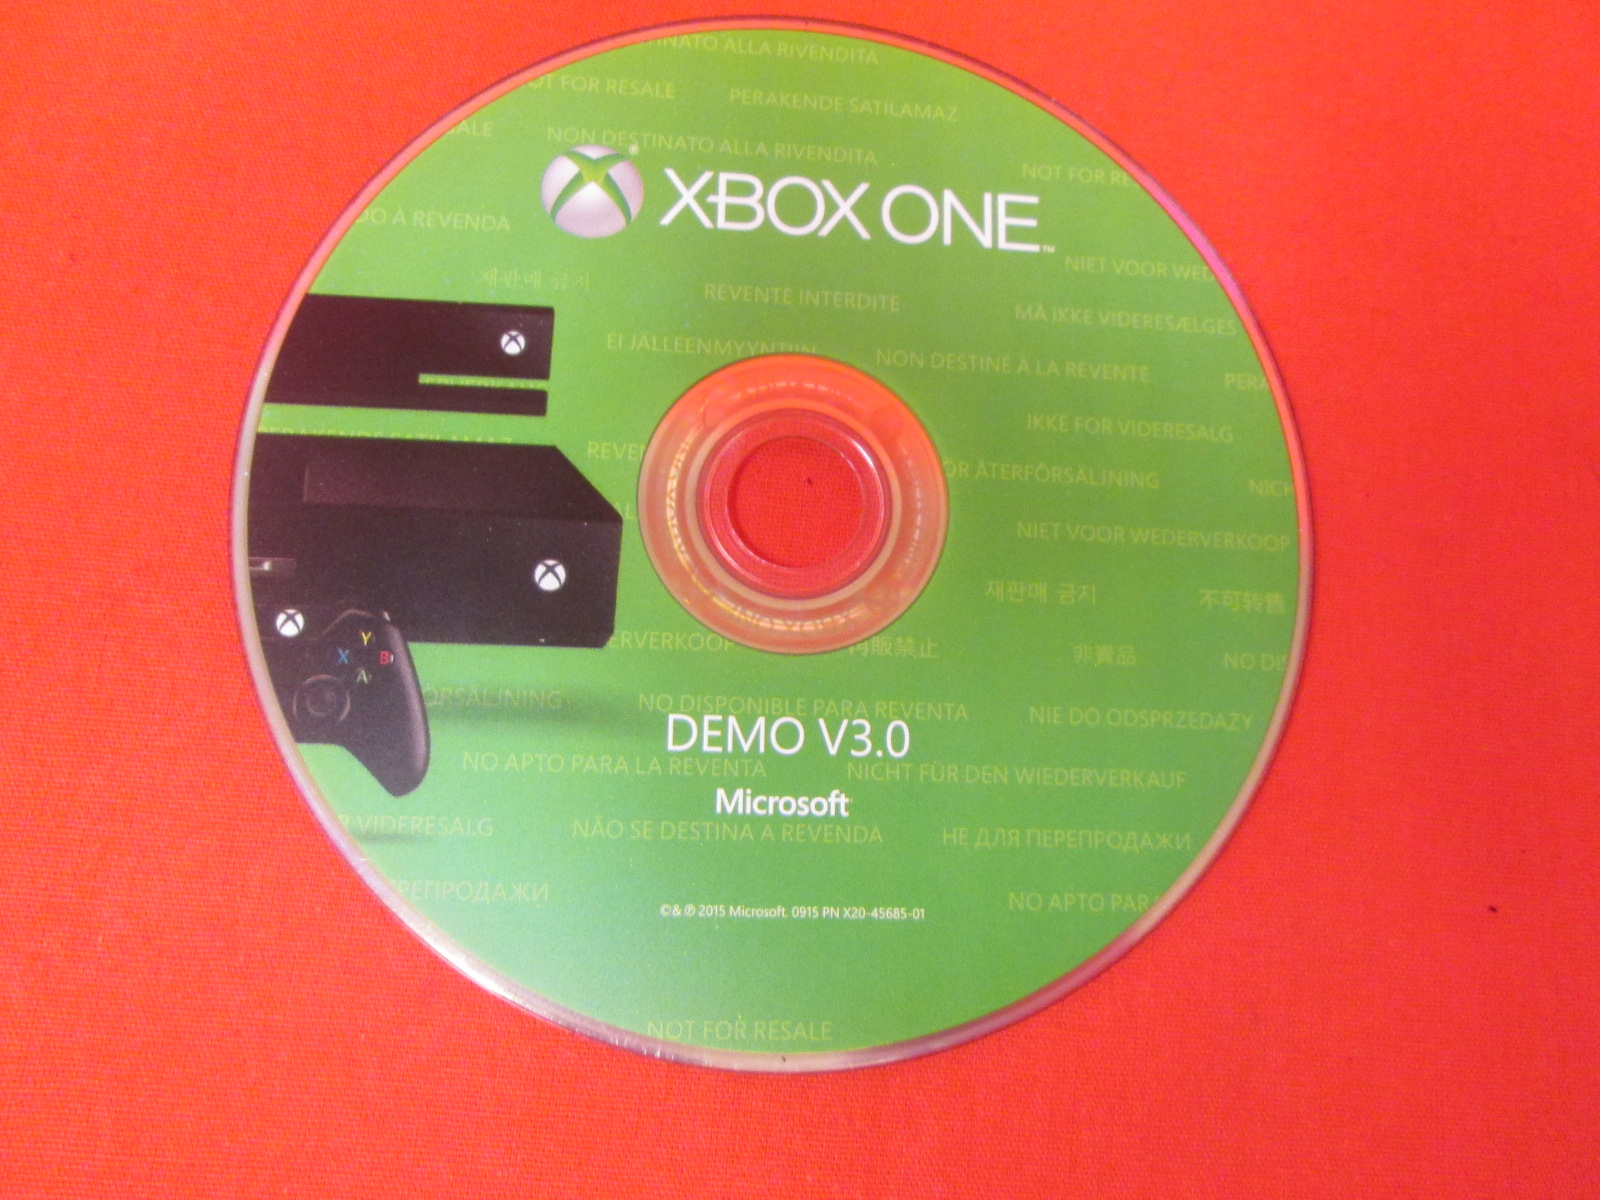 Demo V3.0 Game Disc For Xbox One